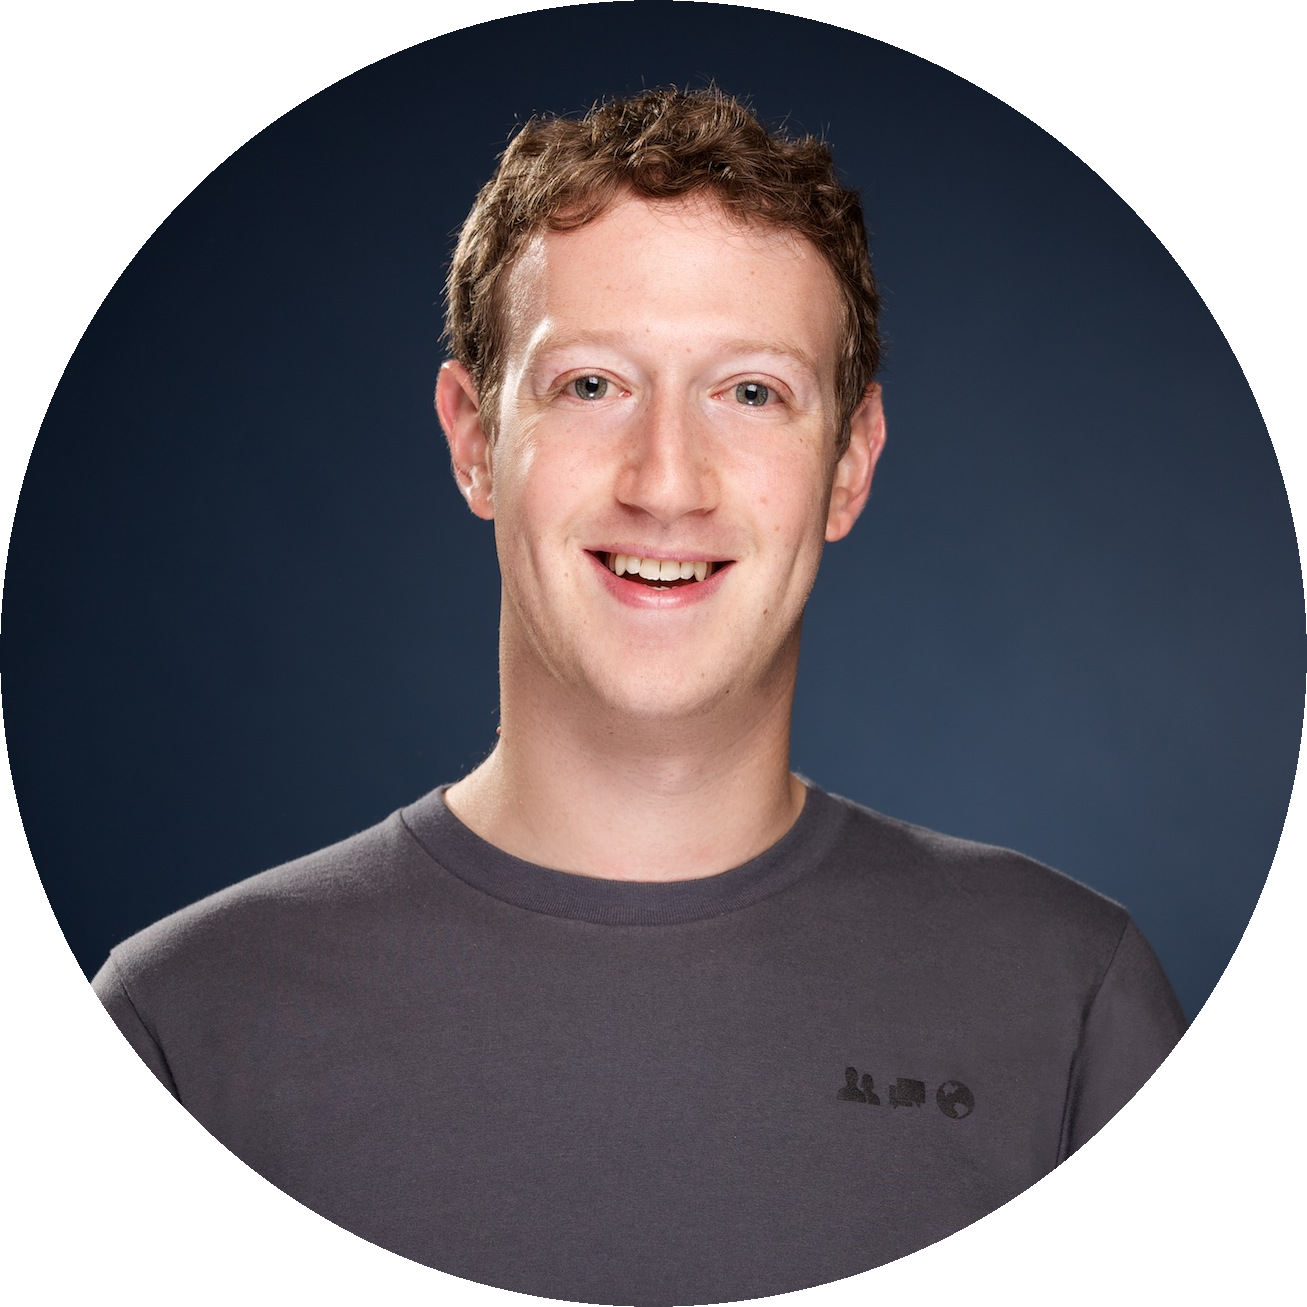 Mark Zuckerberg PNG images free download.